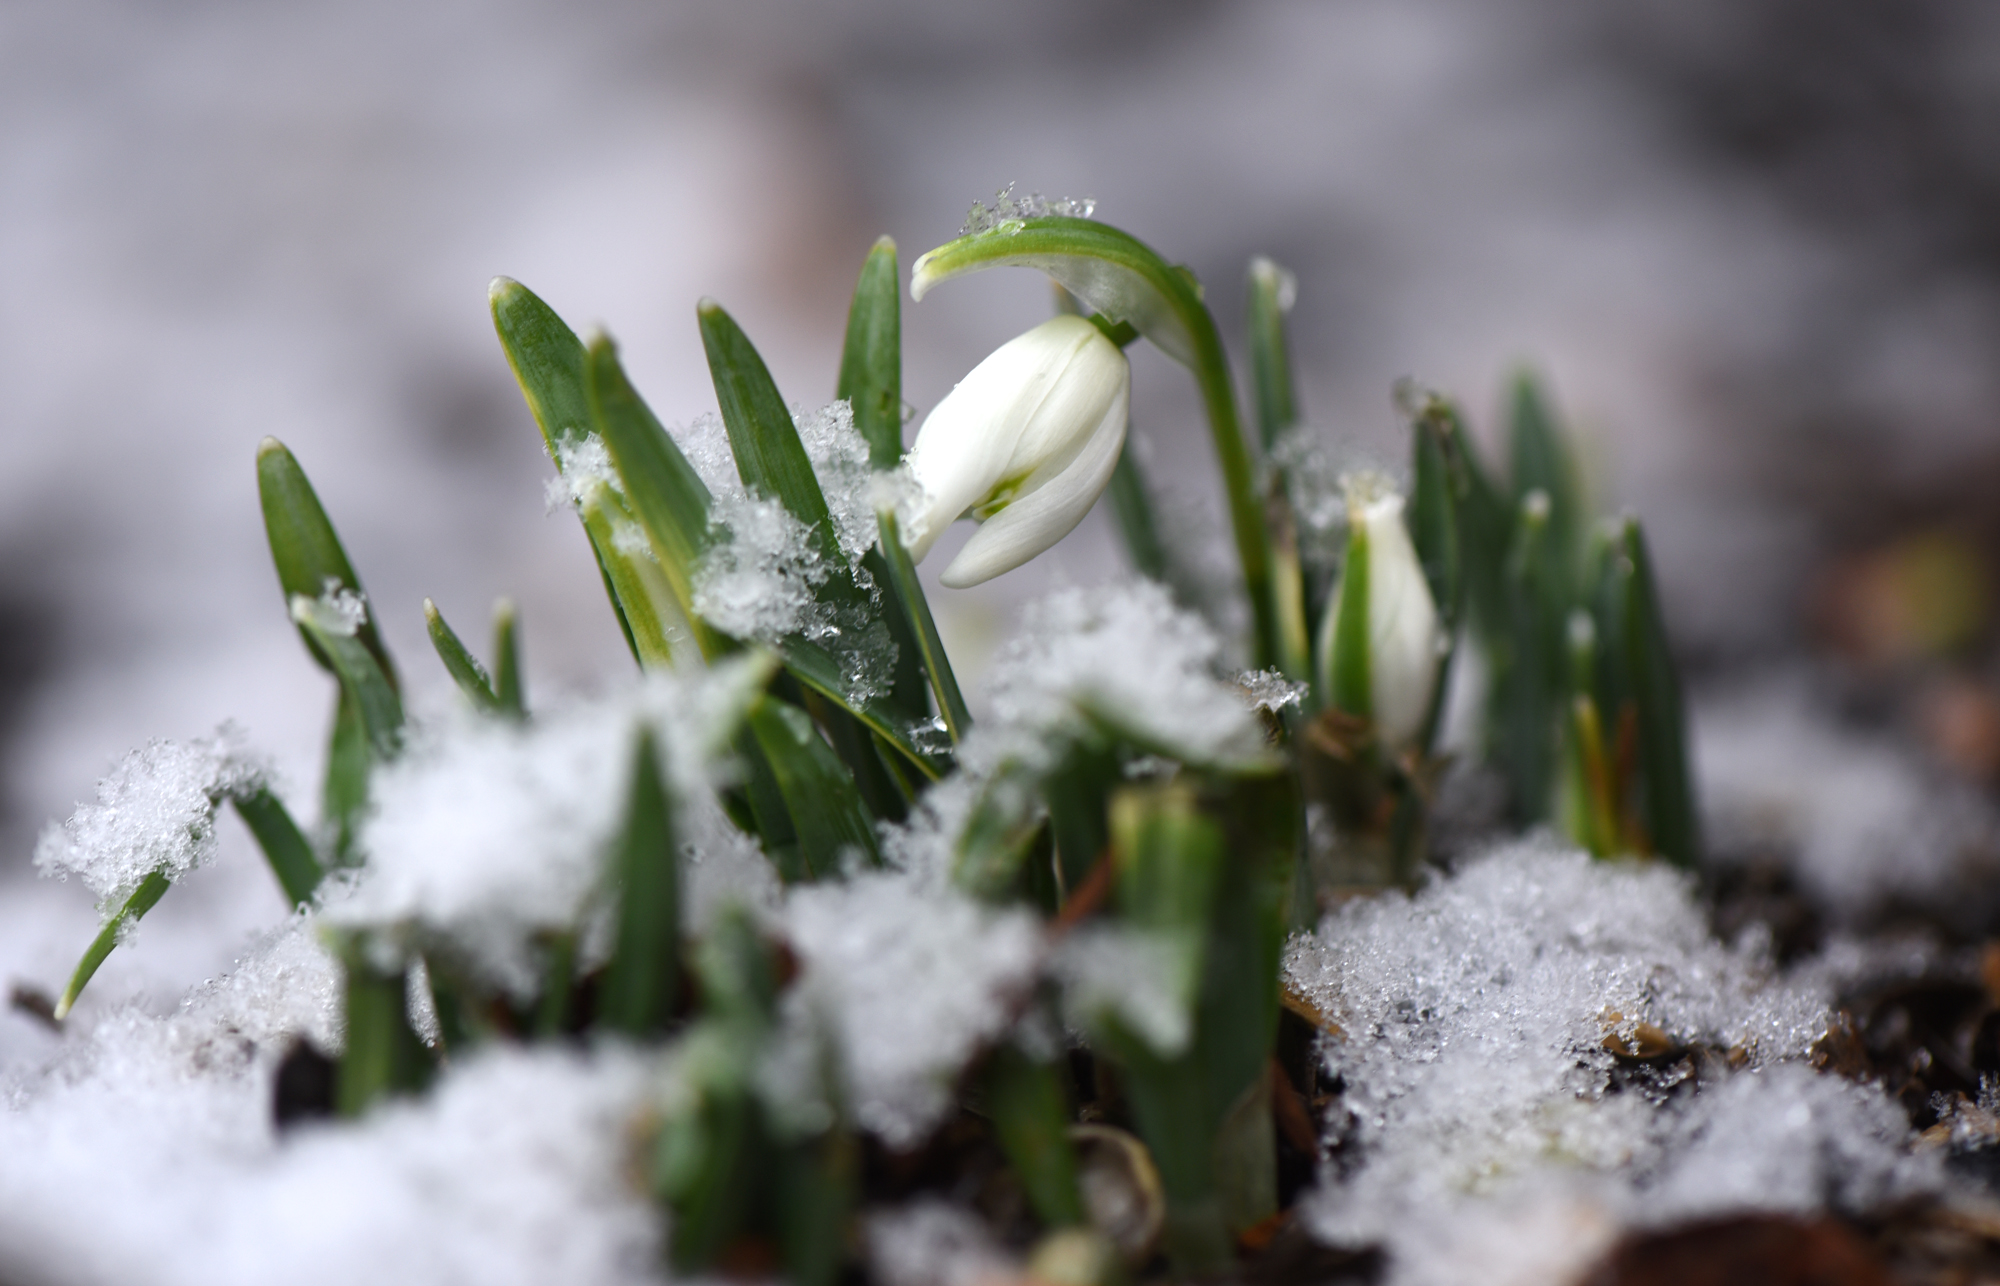 Snowdrops are one of the first flowers to bloom in the late winter.